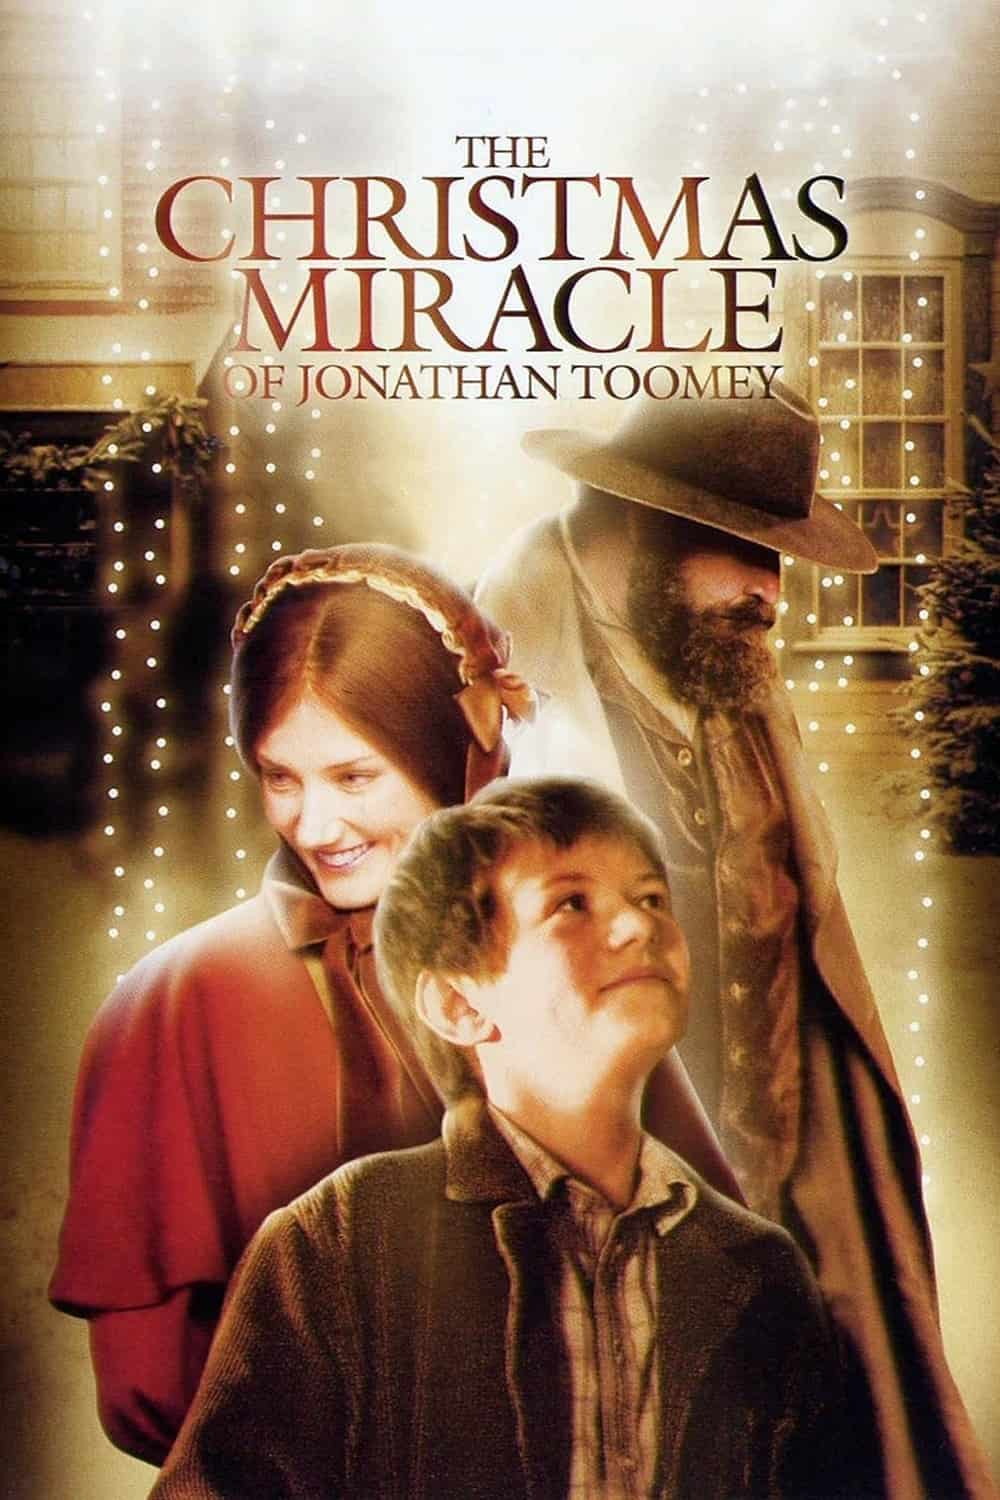 The Christmas Miracle of Jonathan Toomey, 2007